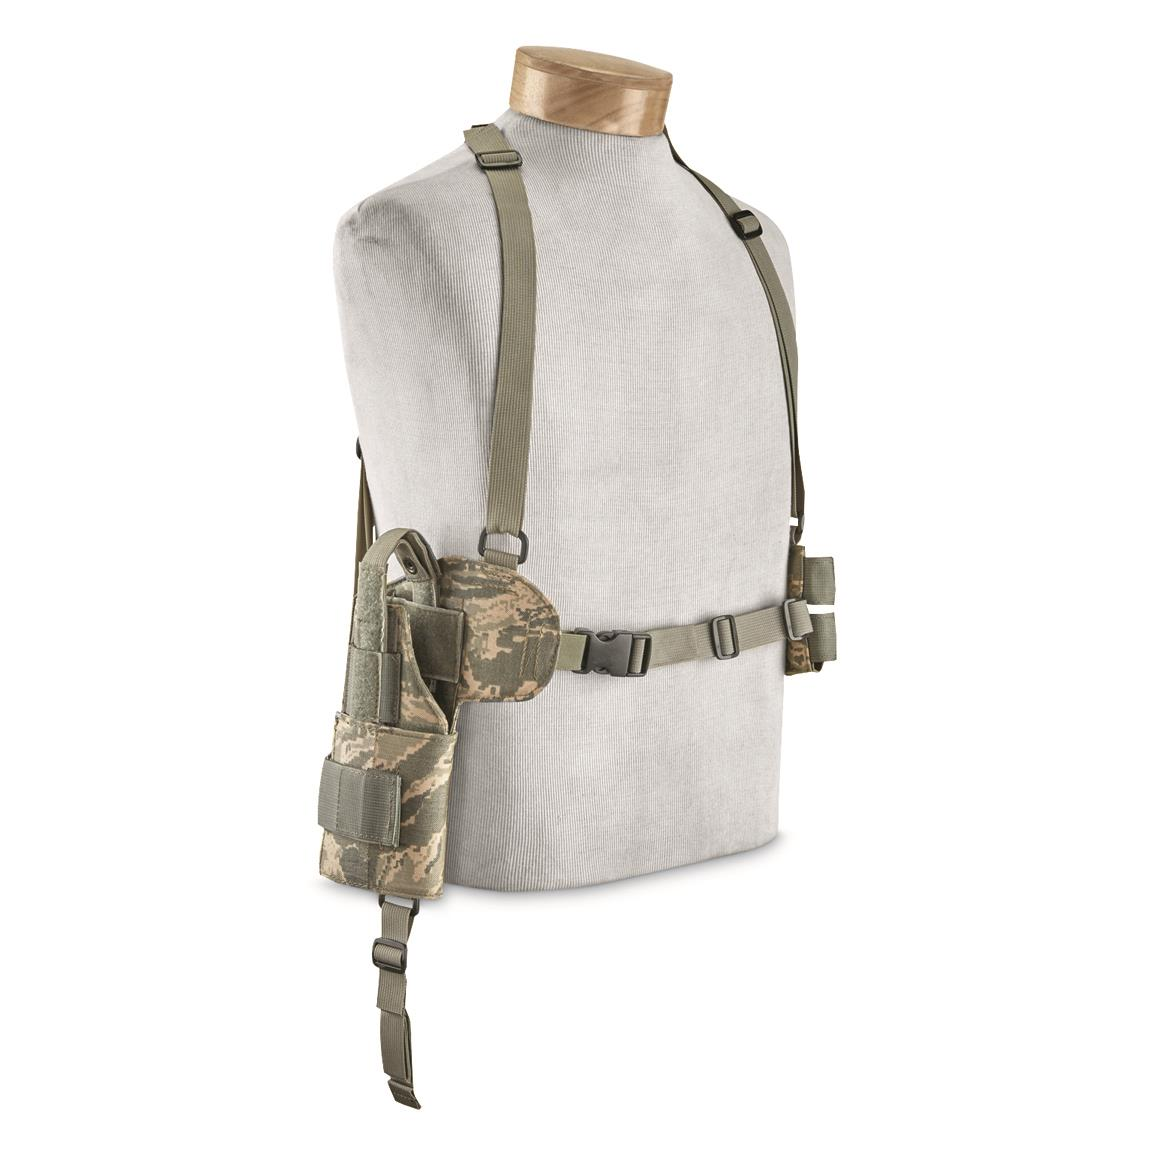 U.S. Military Surplus BDS Tactical Horizontal Shoulder Holster and Mag Pouch, New, ABU Camo